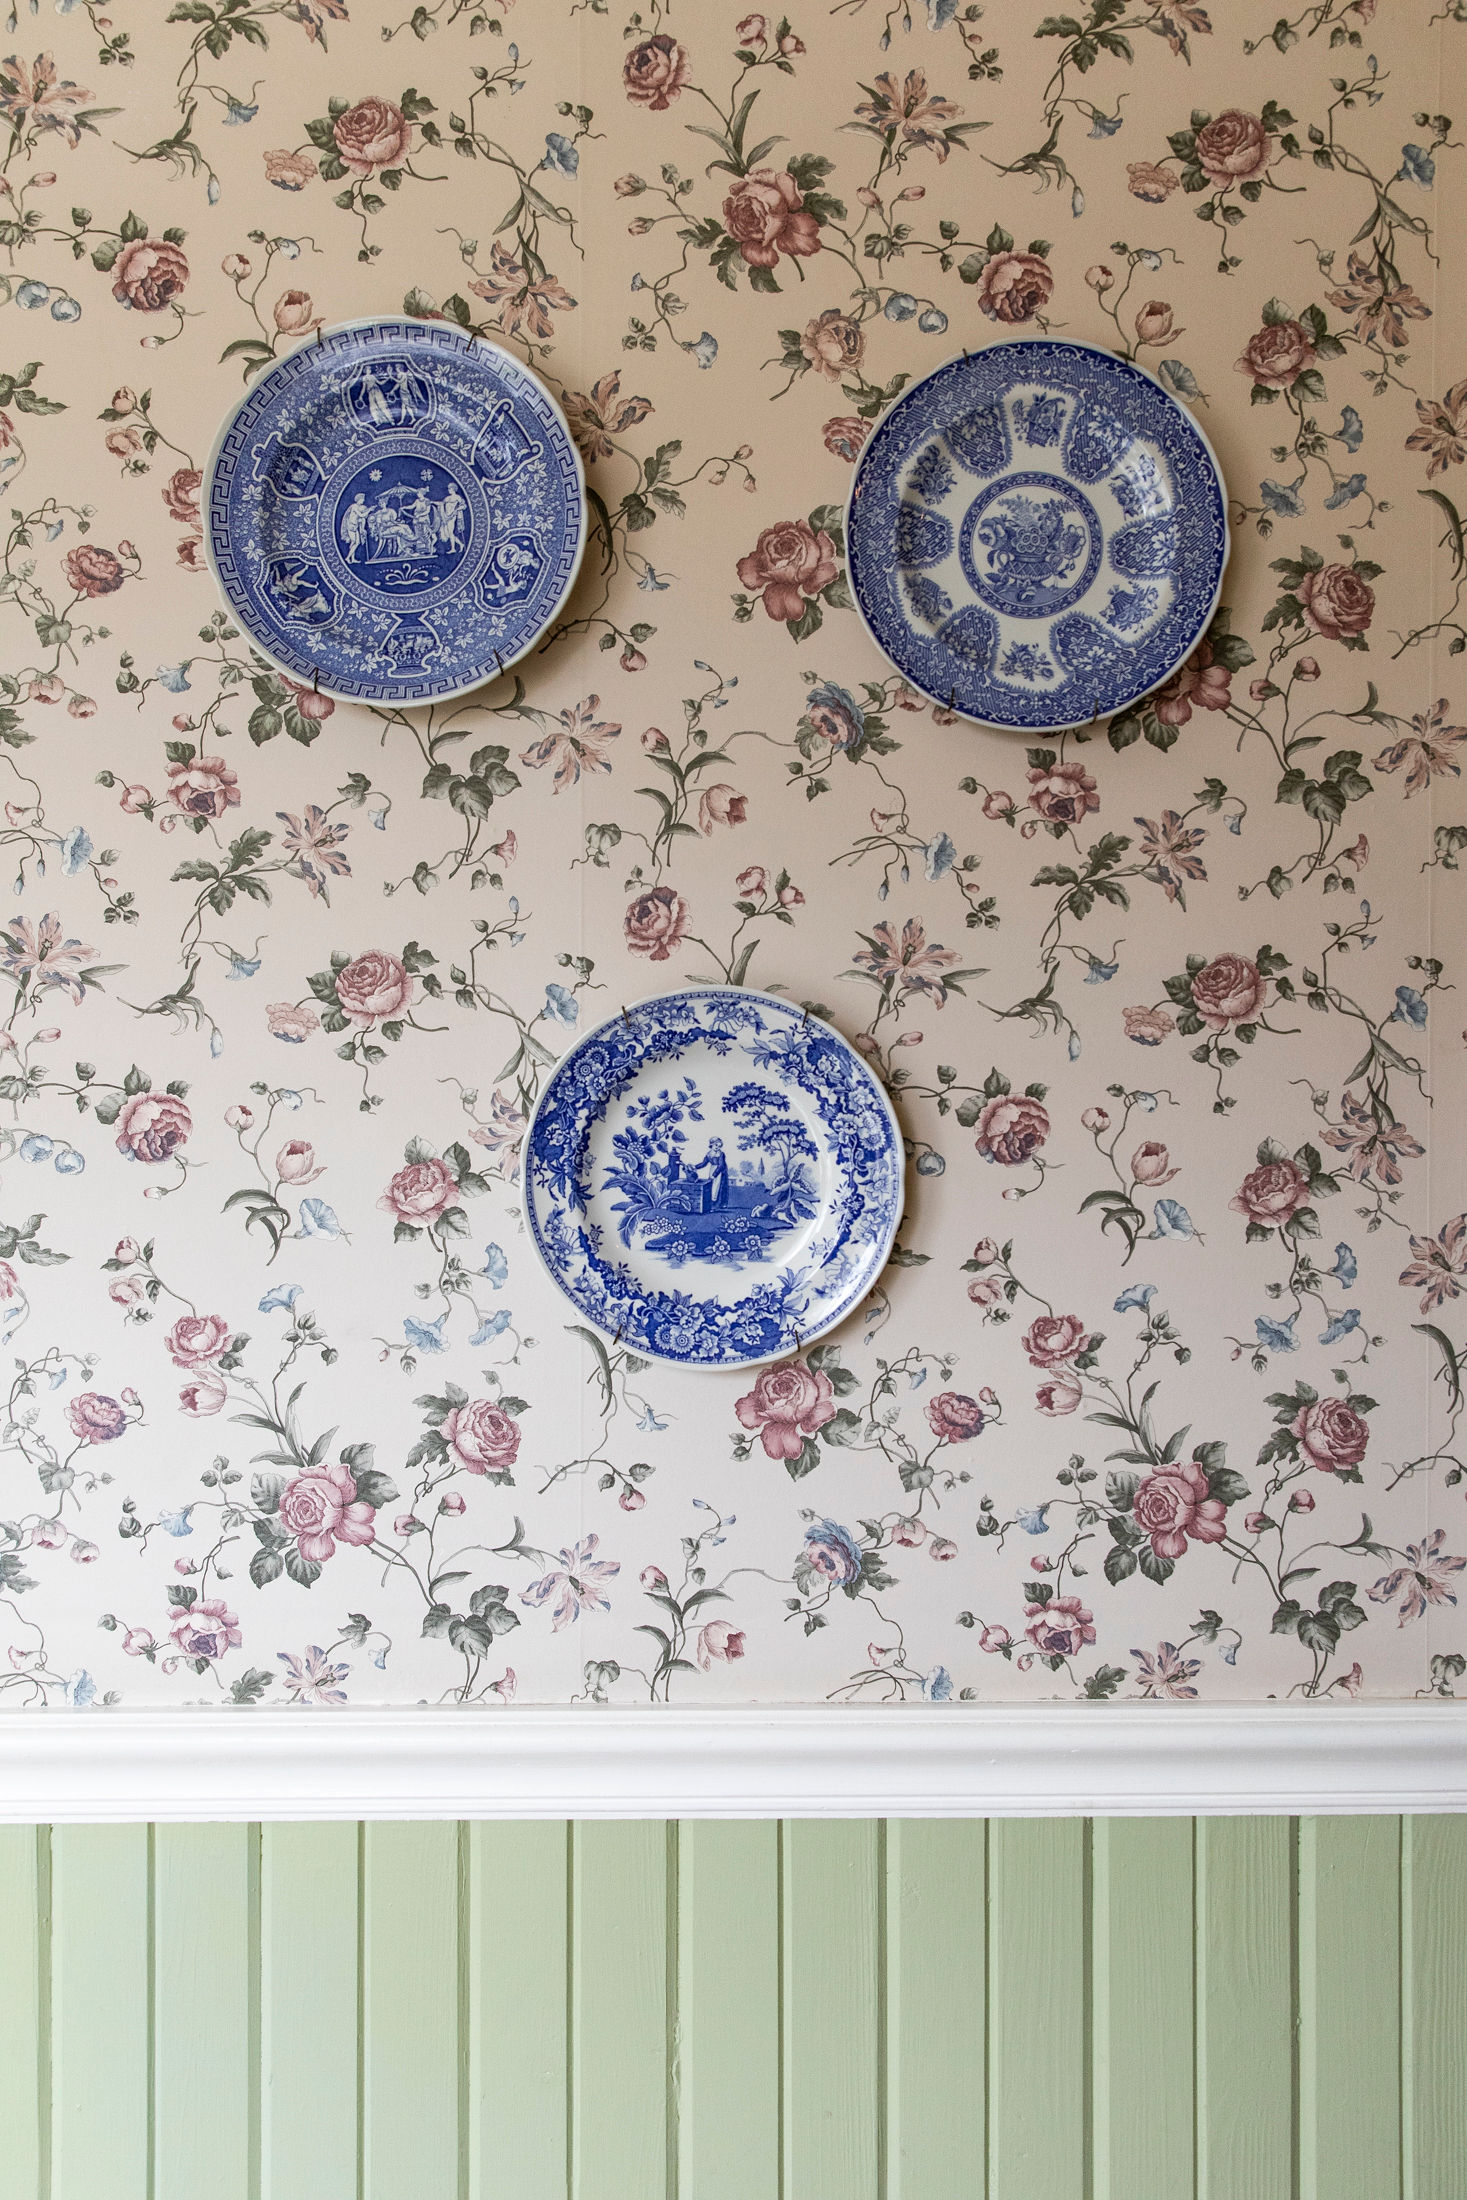 A trio of vintage plates hang on the wall at the Headlands Inn, a Bed & Breakfast in Mendocino, CA